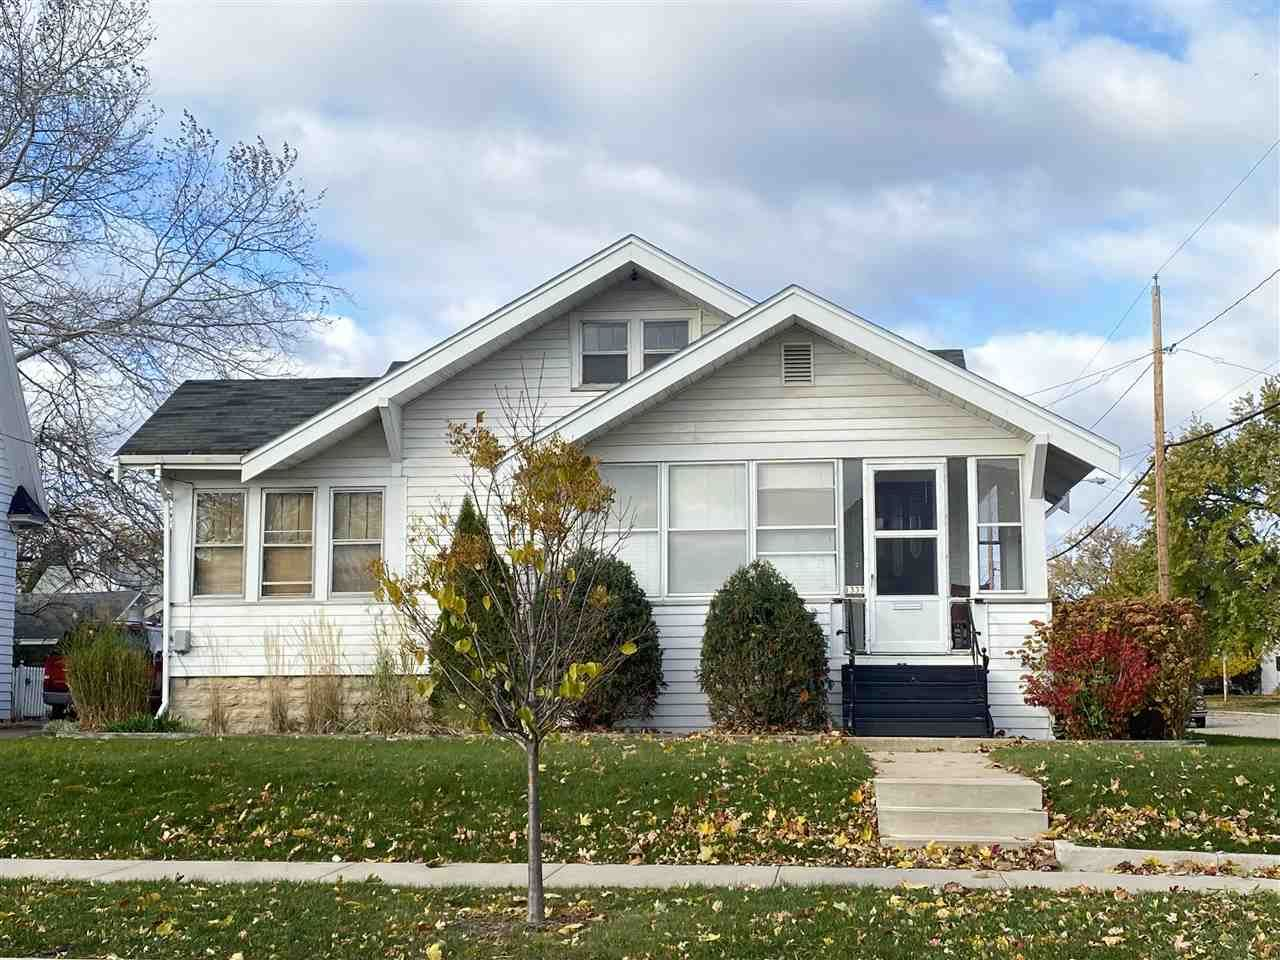 1337 N MAIN Street, Oshkosh, WI 54901 - MLS#: 50232187